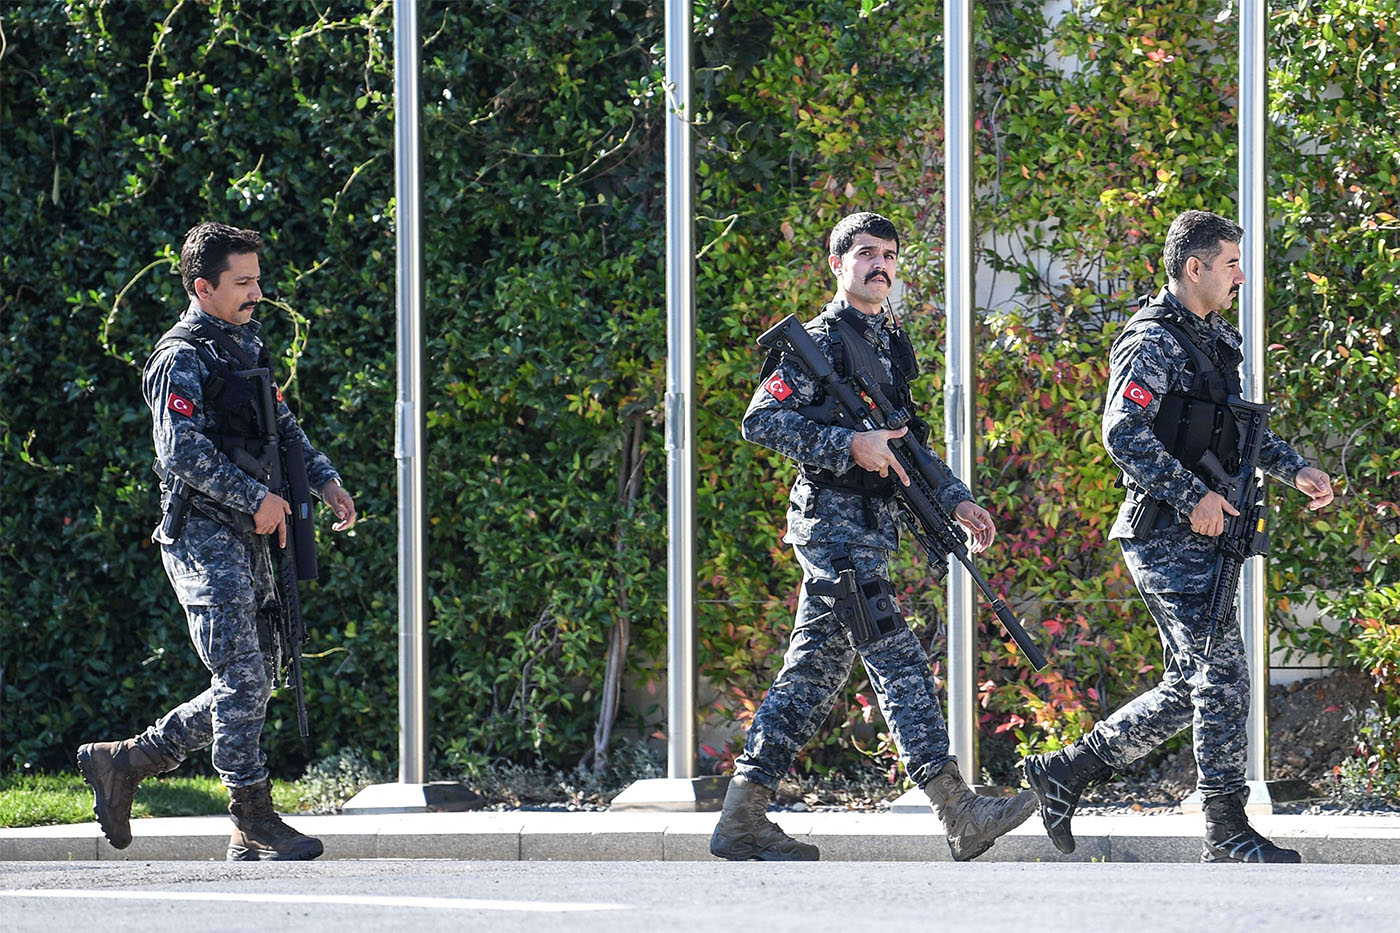 Turkish special force police officers patrol outside the Vahdettin Mansion in Istanbul